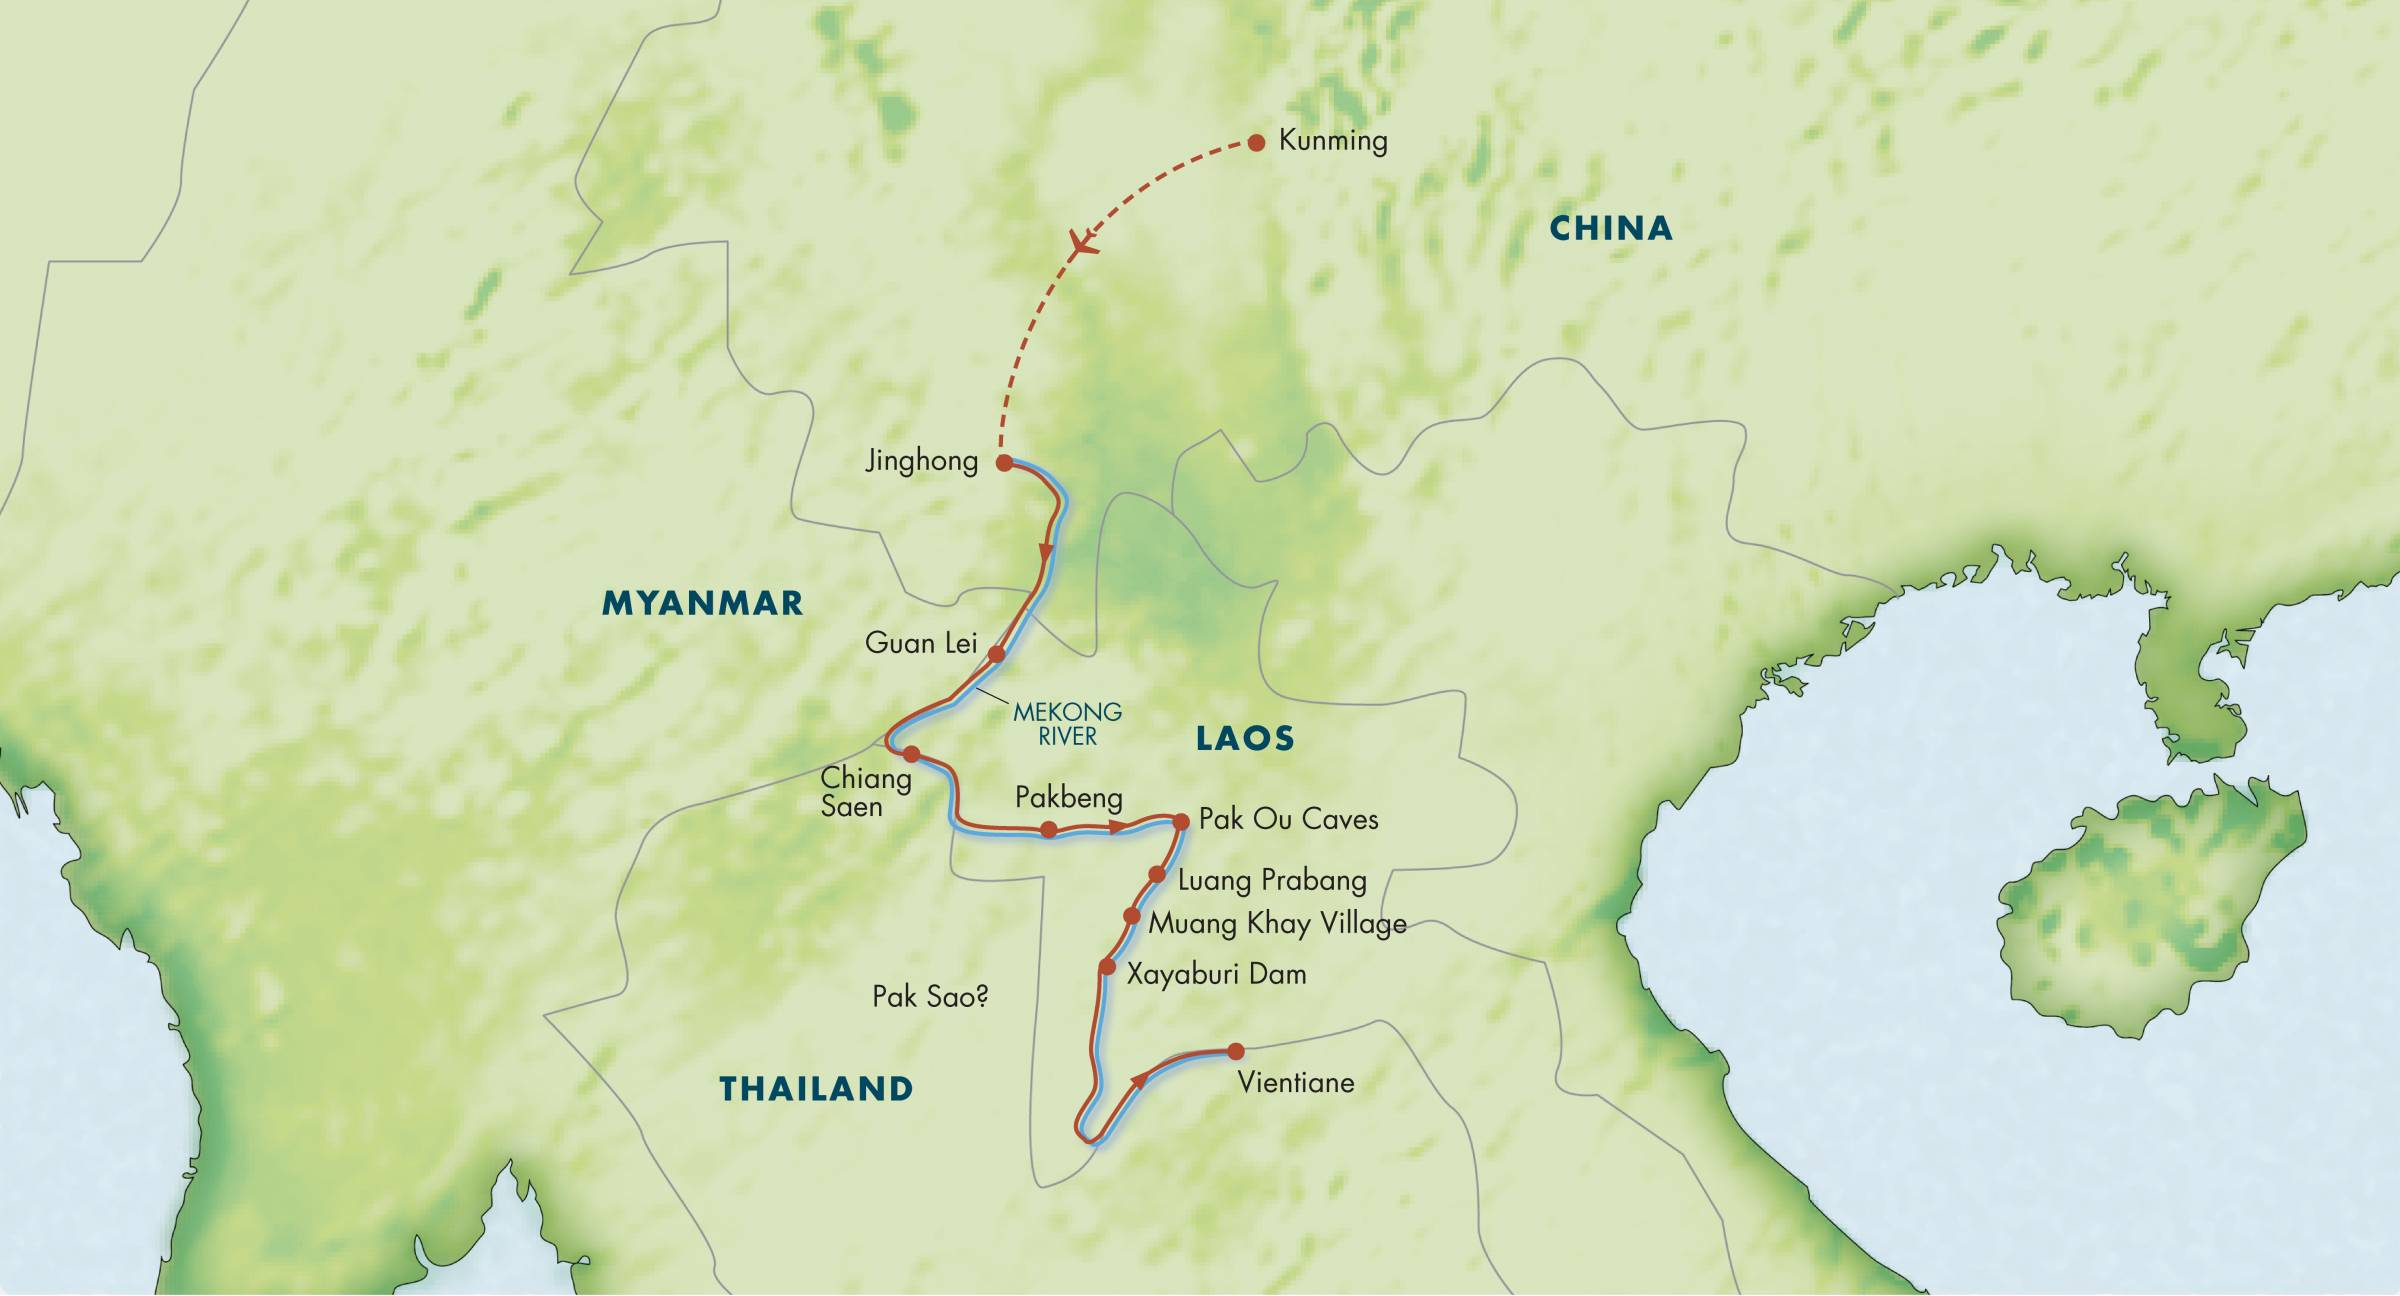 Map for Along the Mekong: China, Thailand & Laos